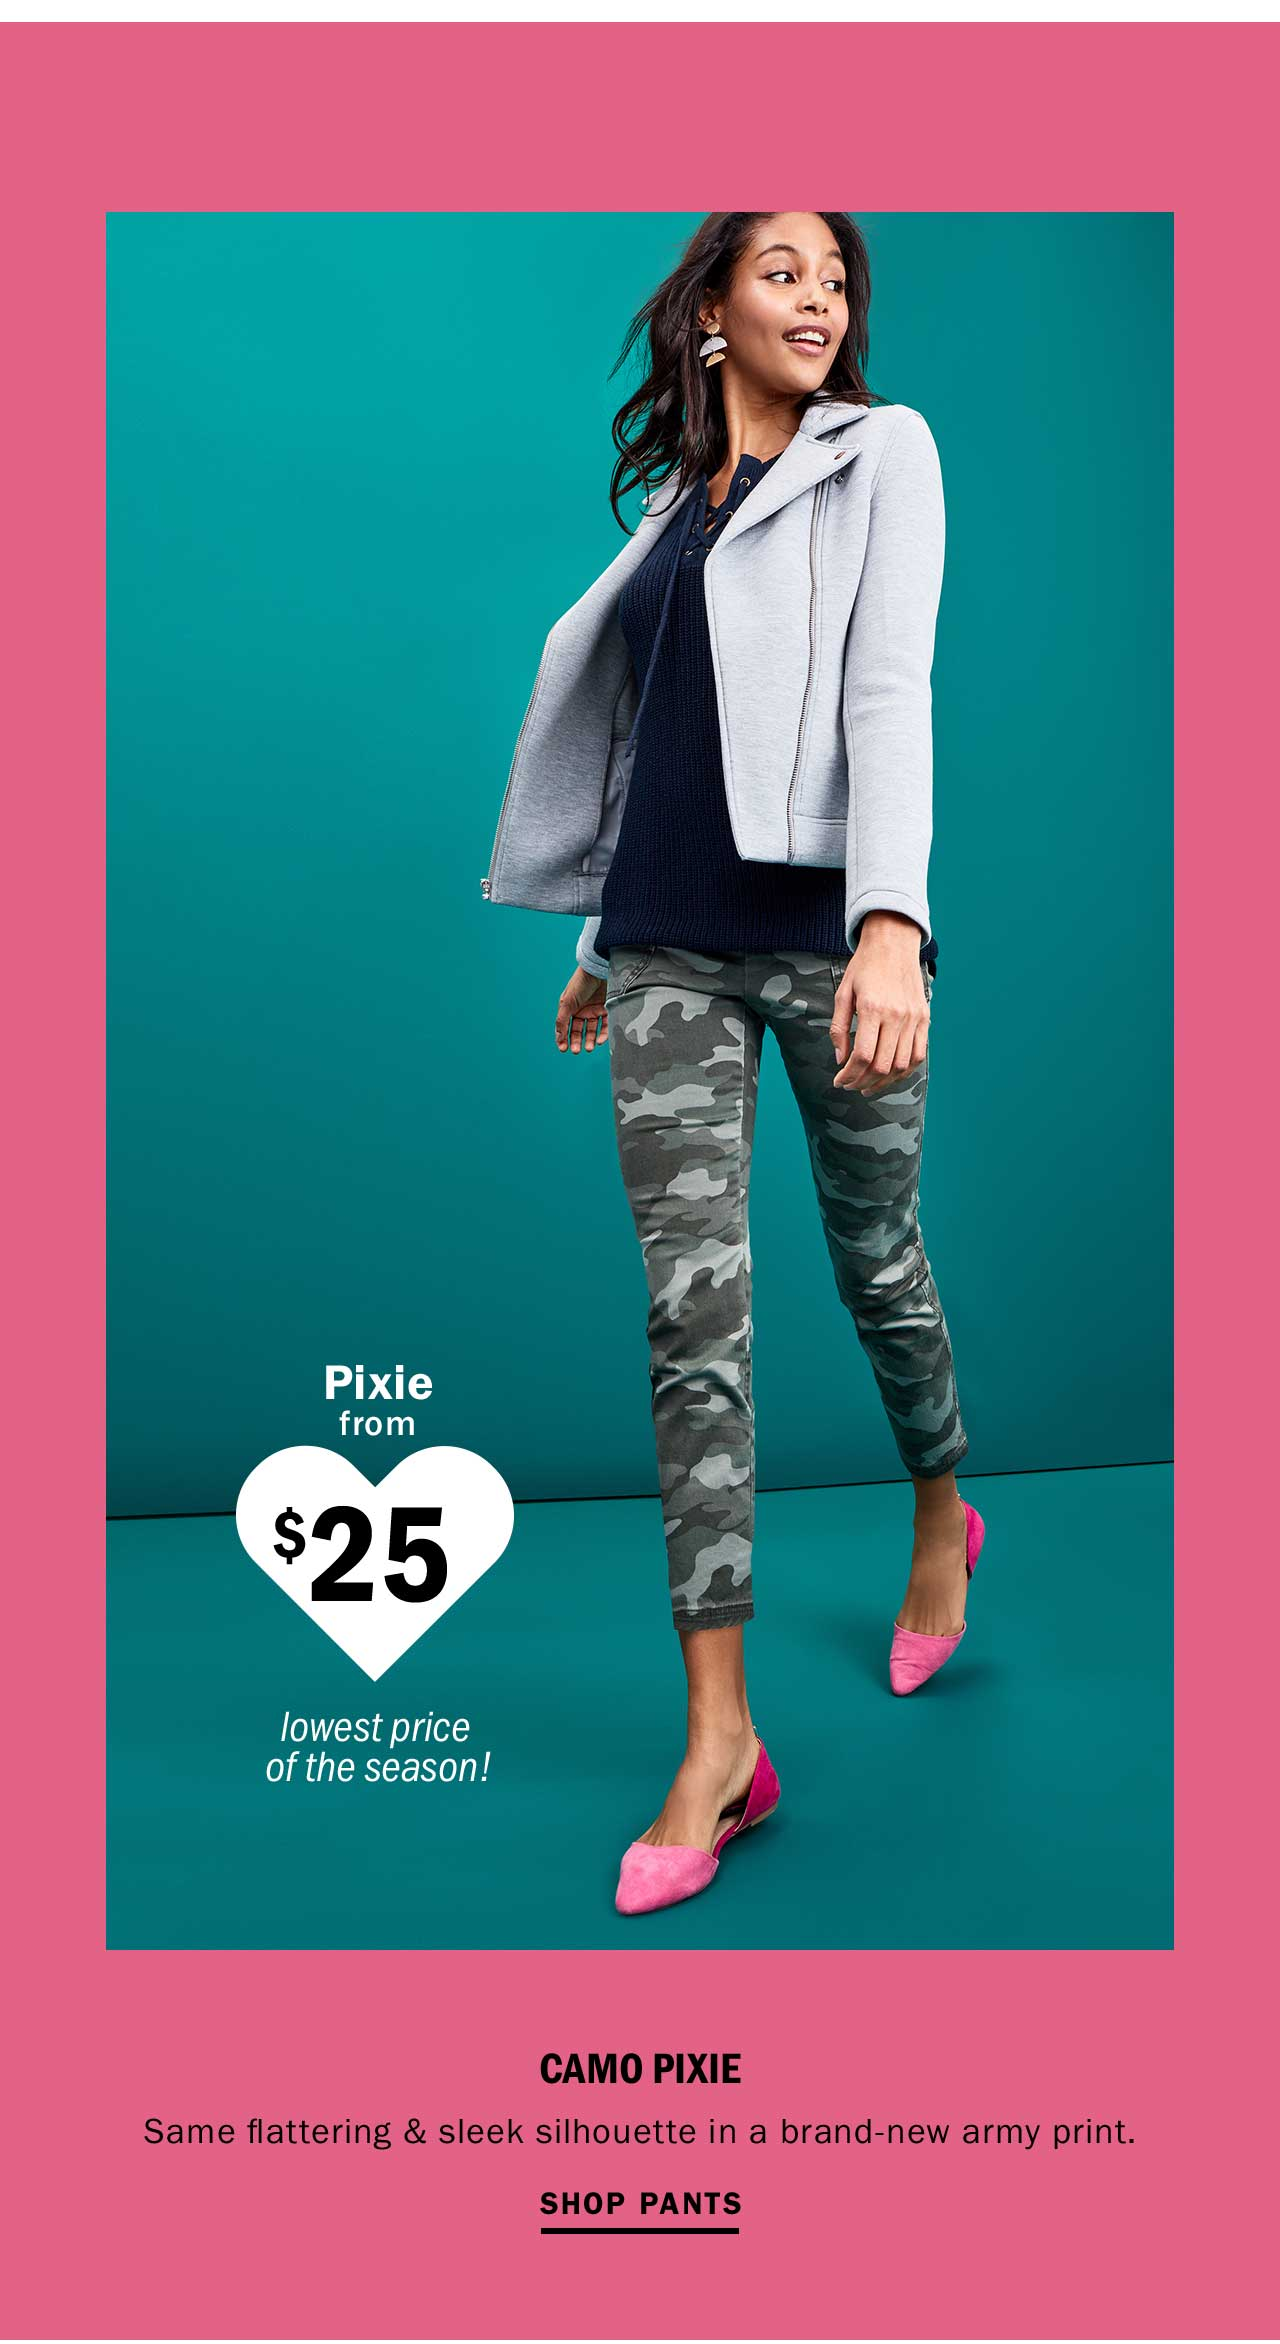 Pixie from $25